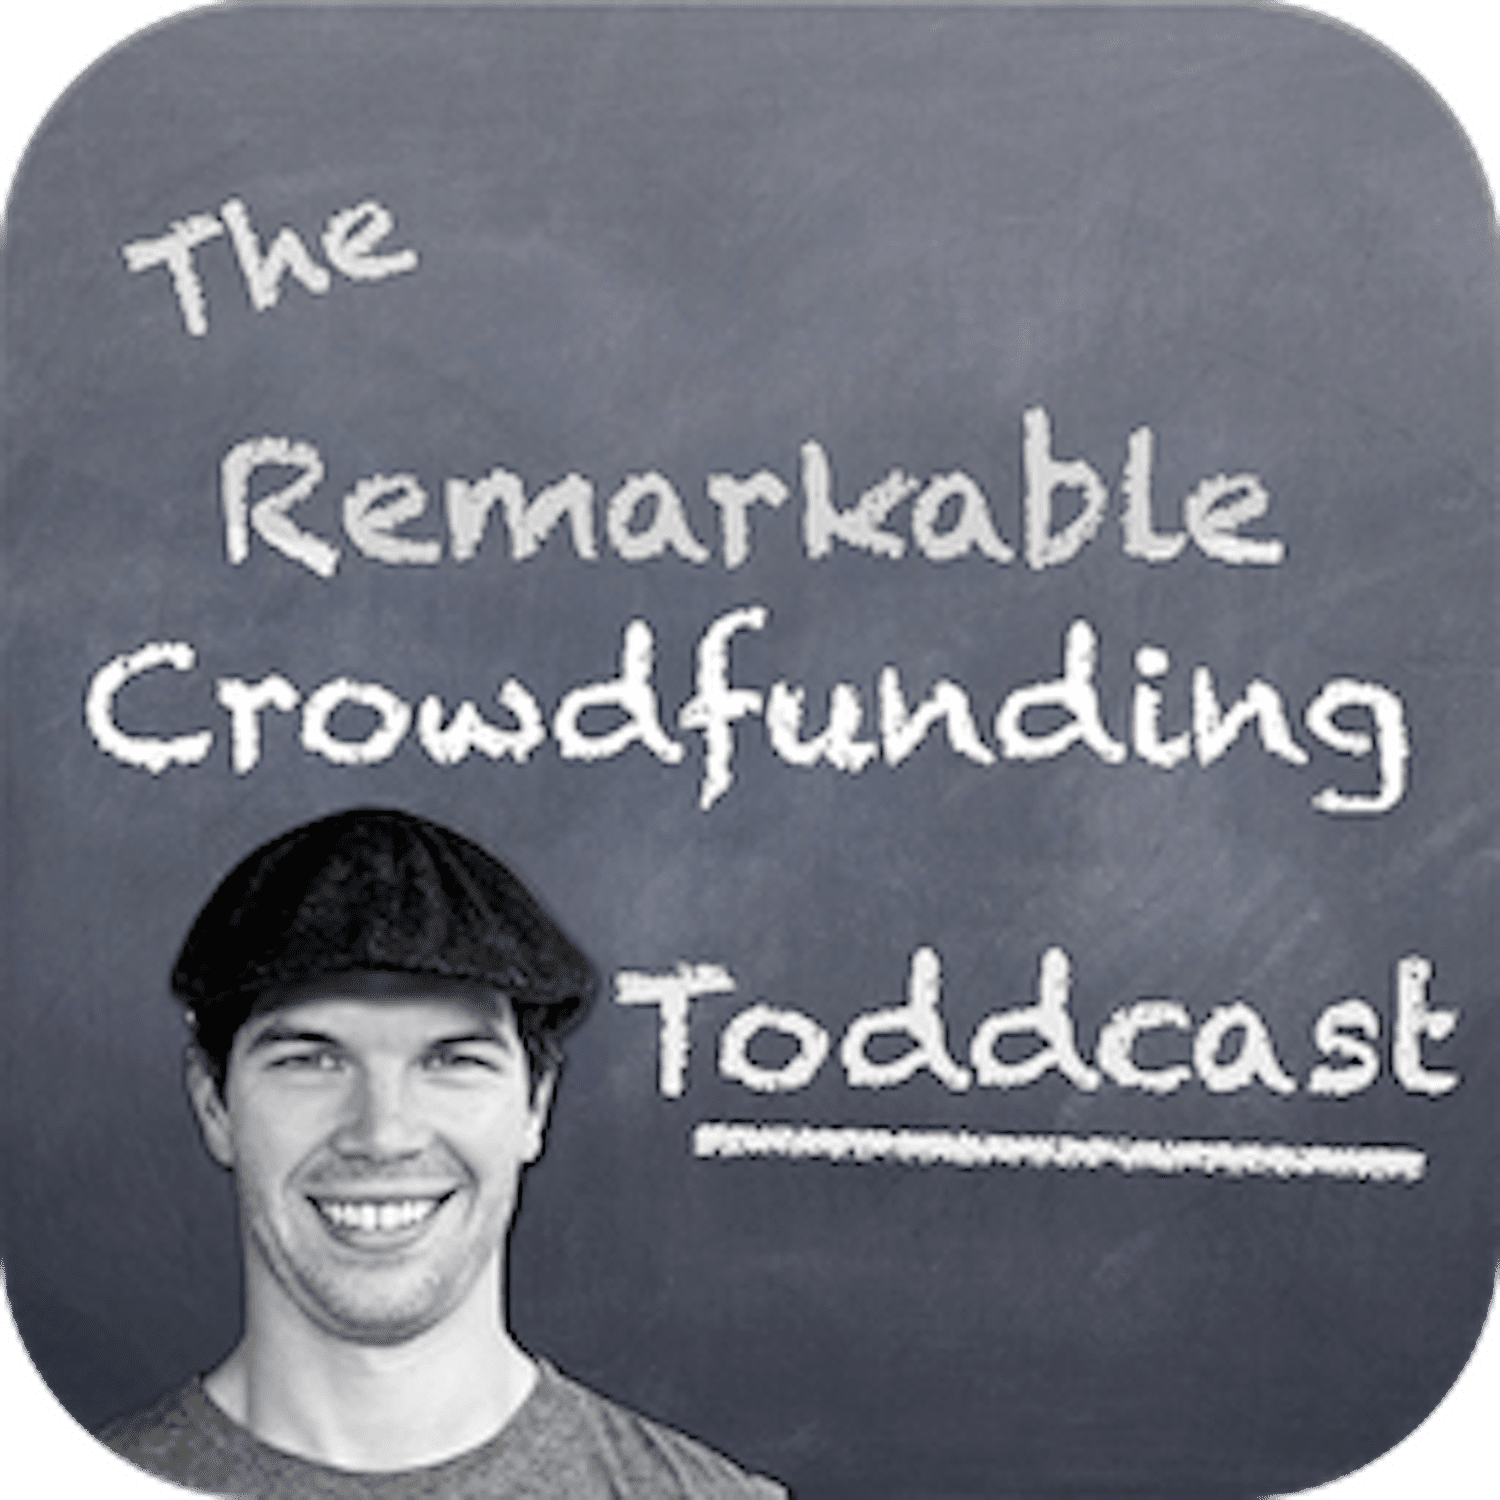 The Remarkable Crowdfunding